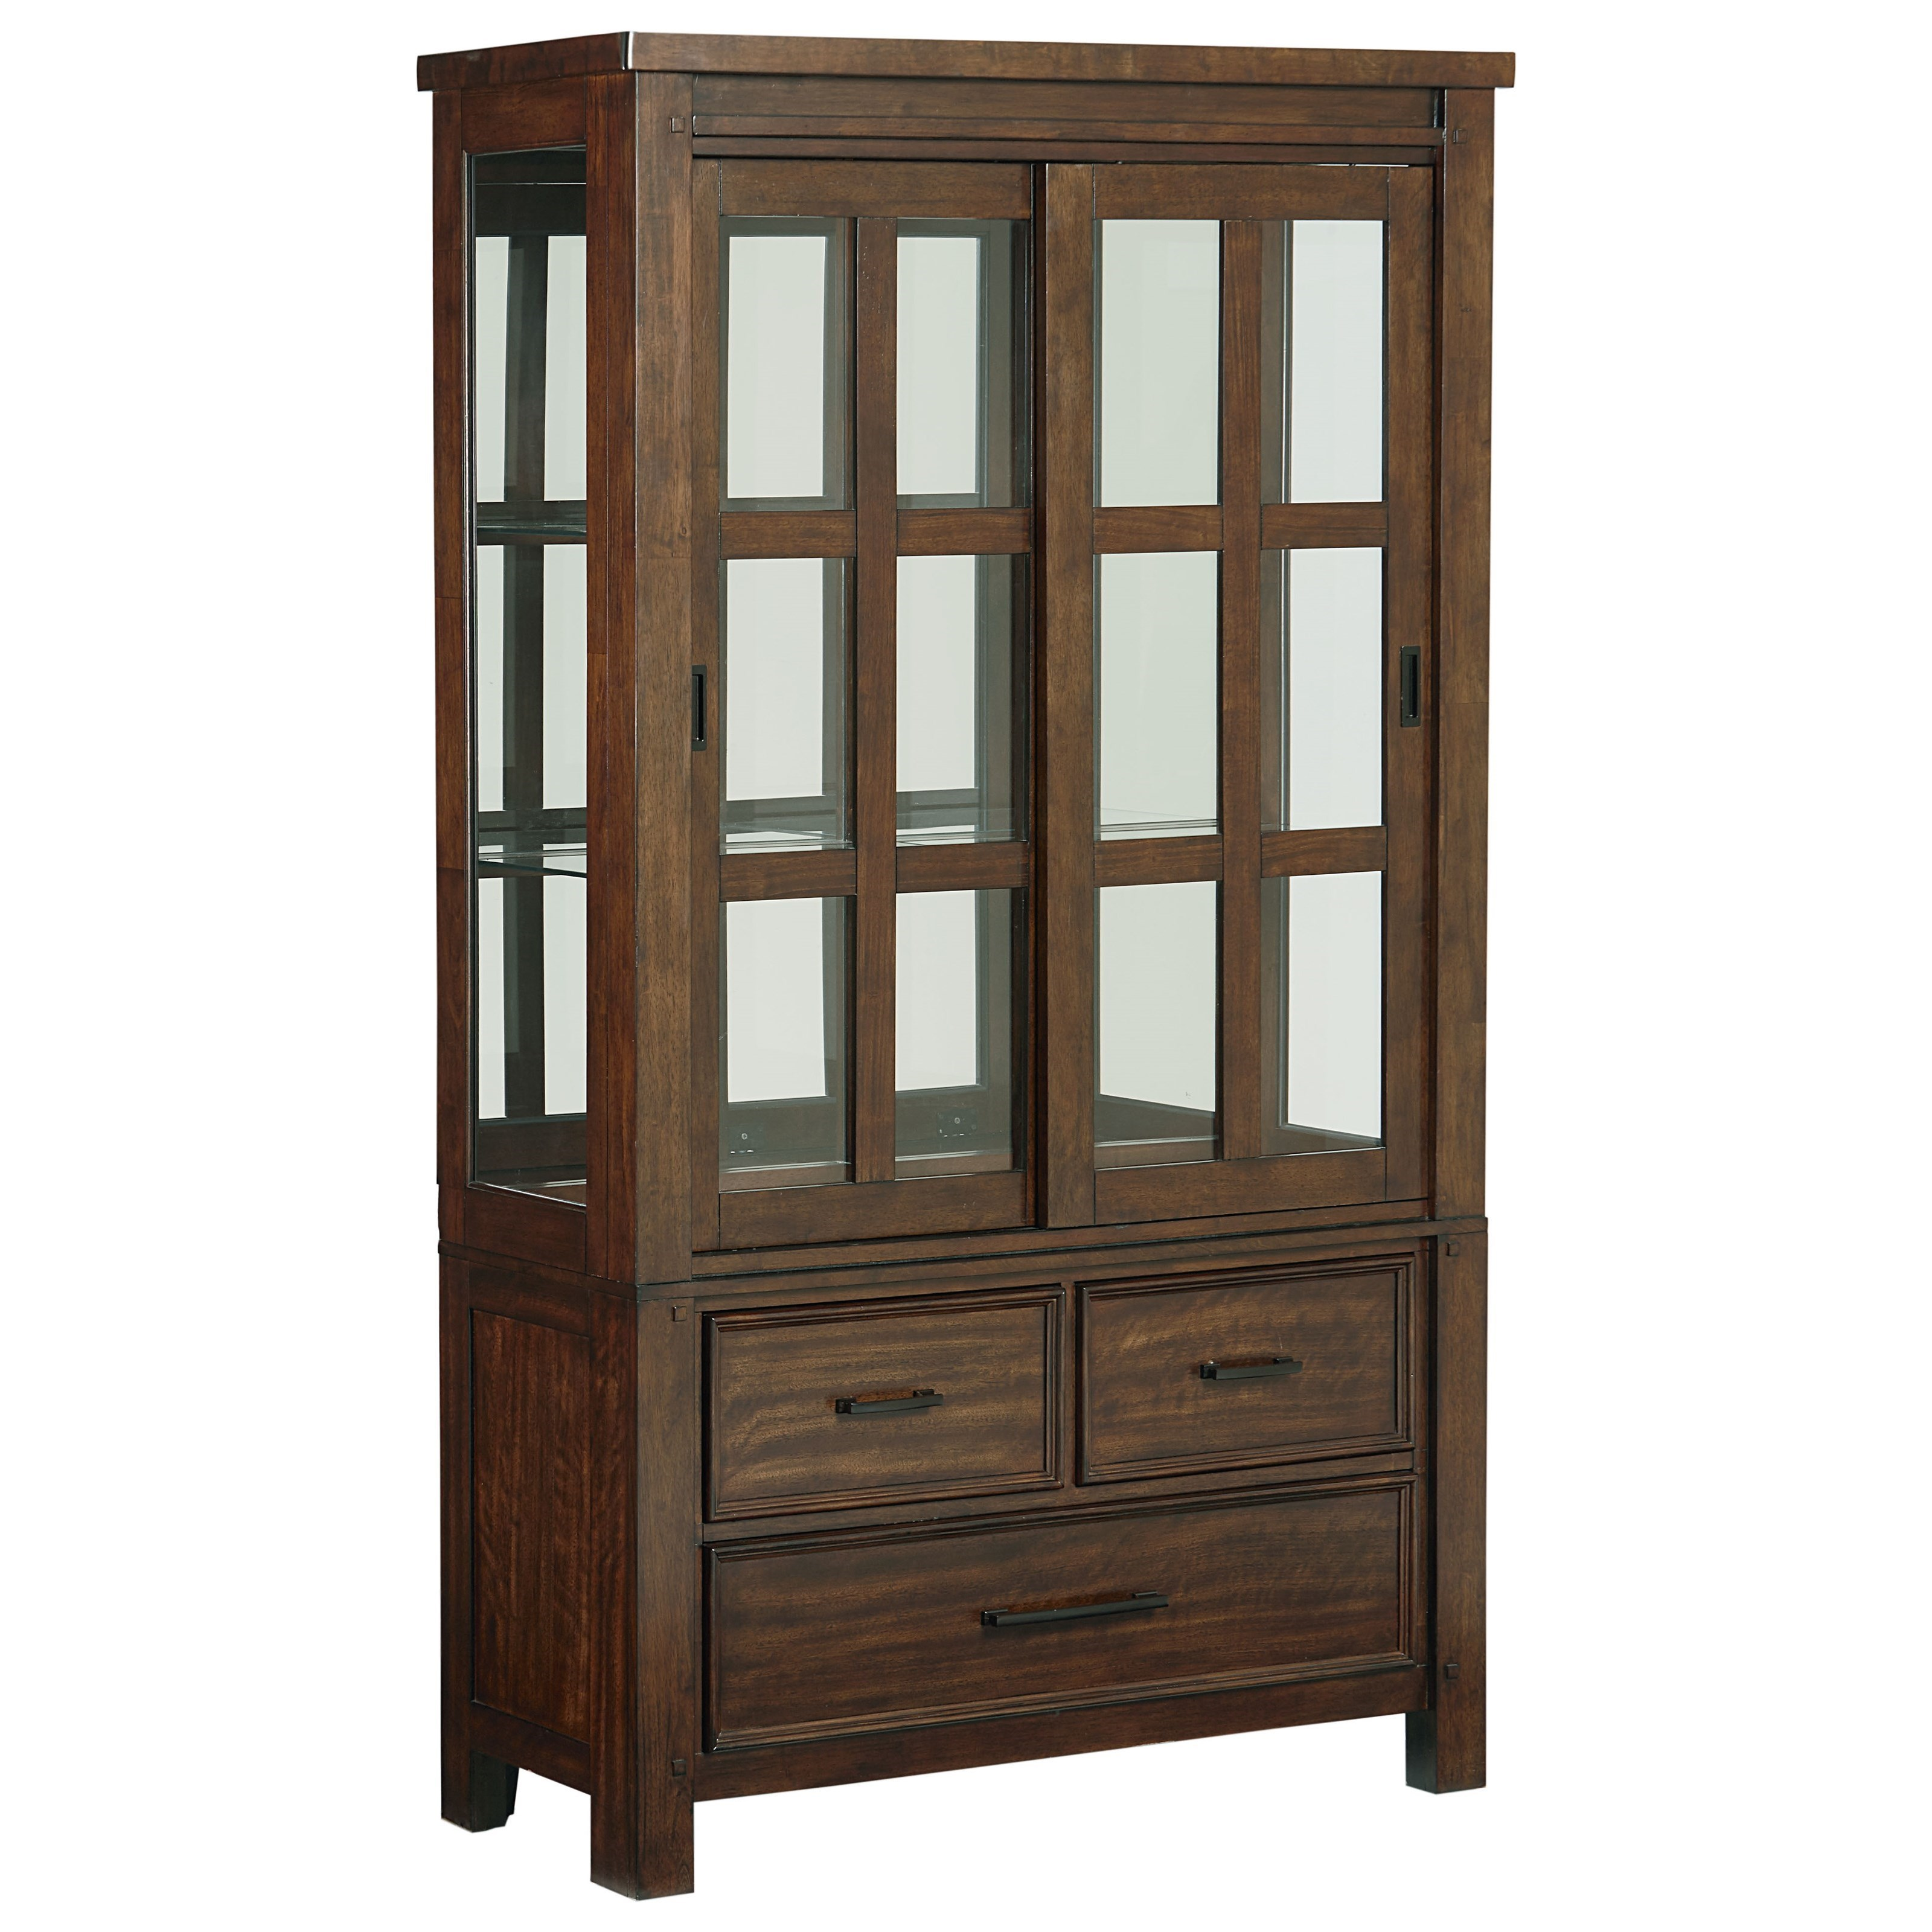 Standard Furniture Cameron Buffet and Hutch - Item Number: 14308+14309